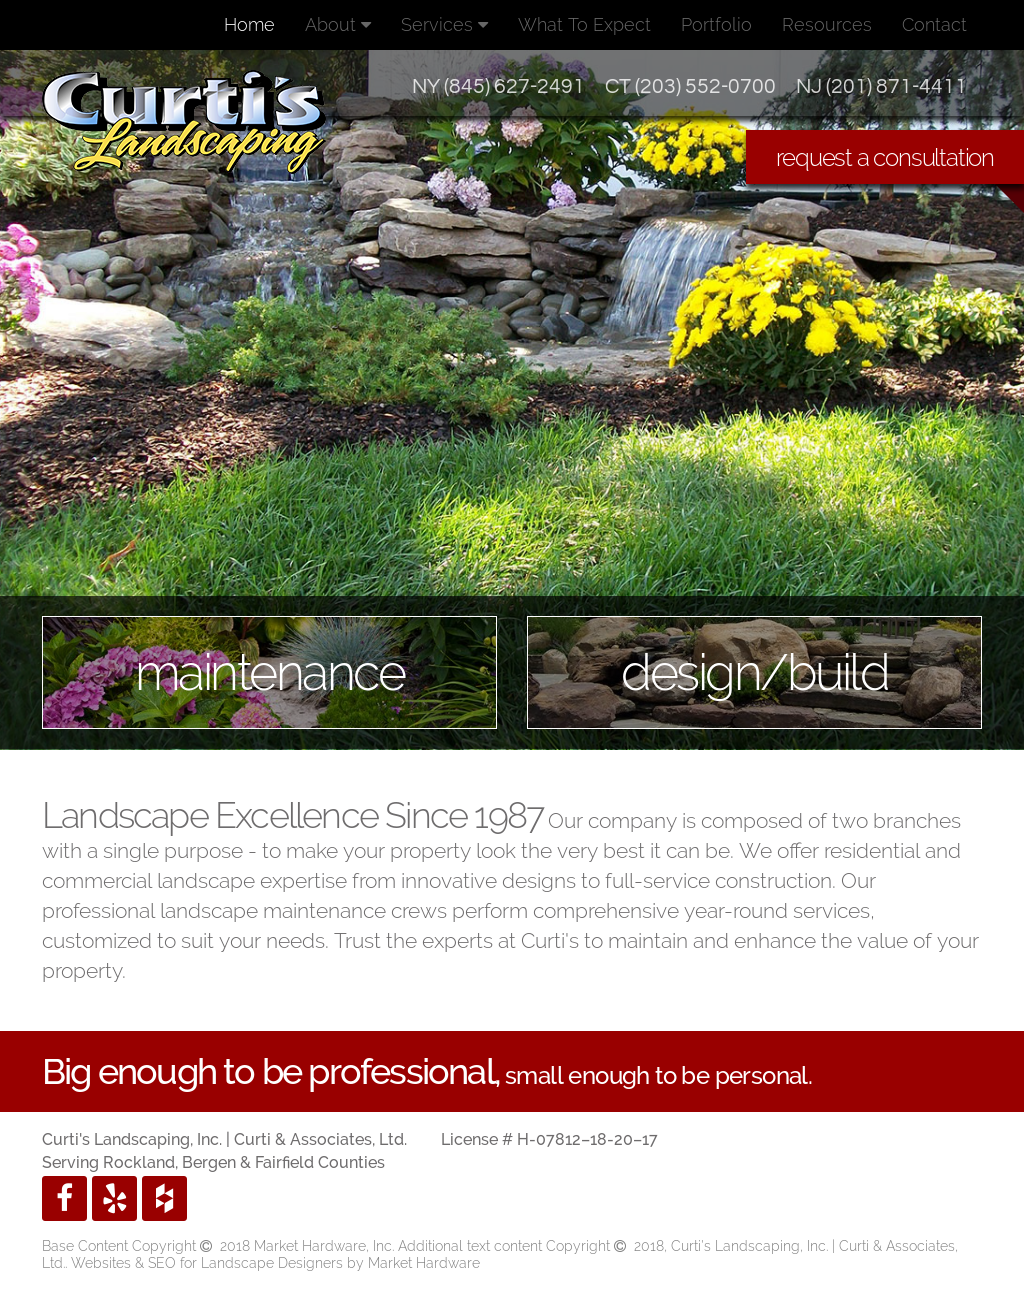 Curti s Landscaping website history - Curti S Landscaping Competitors, Revenue And Employees - Owler